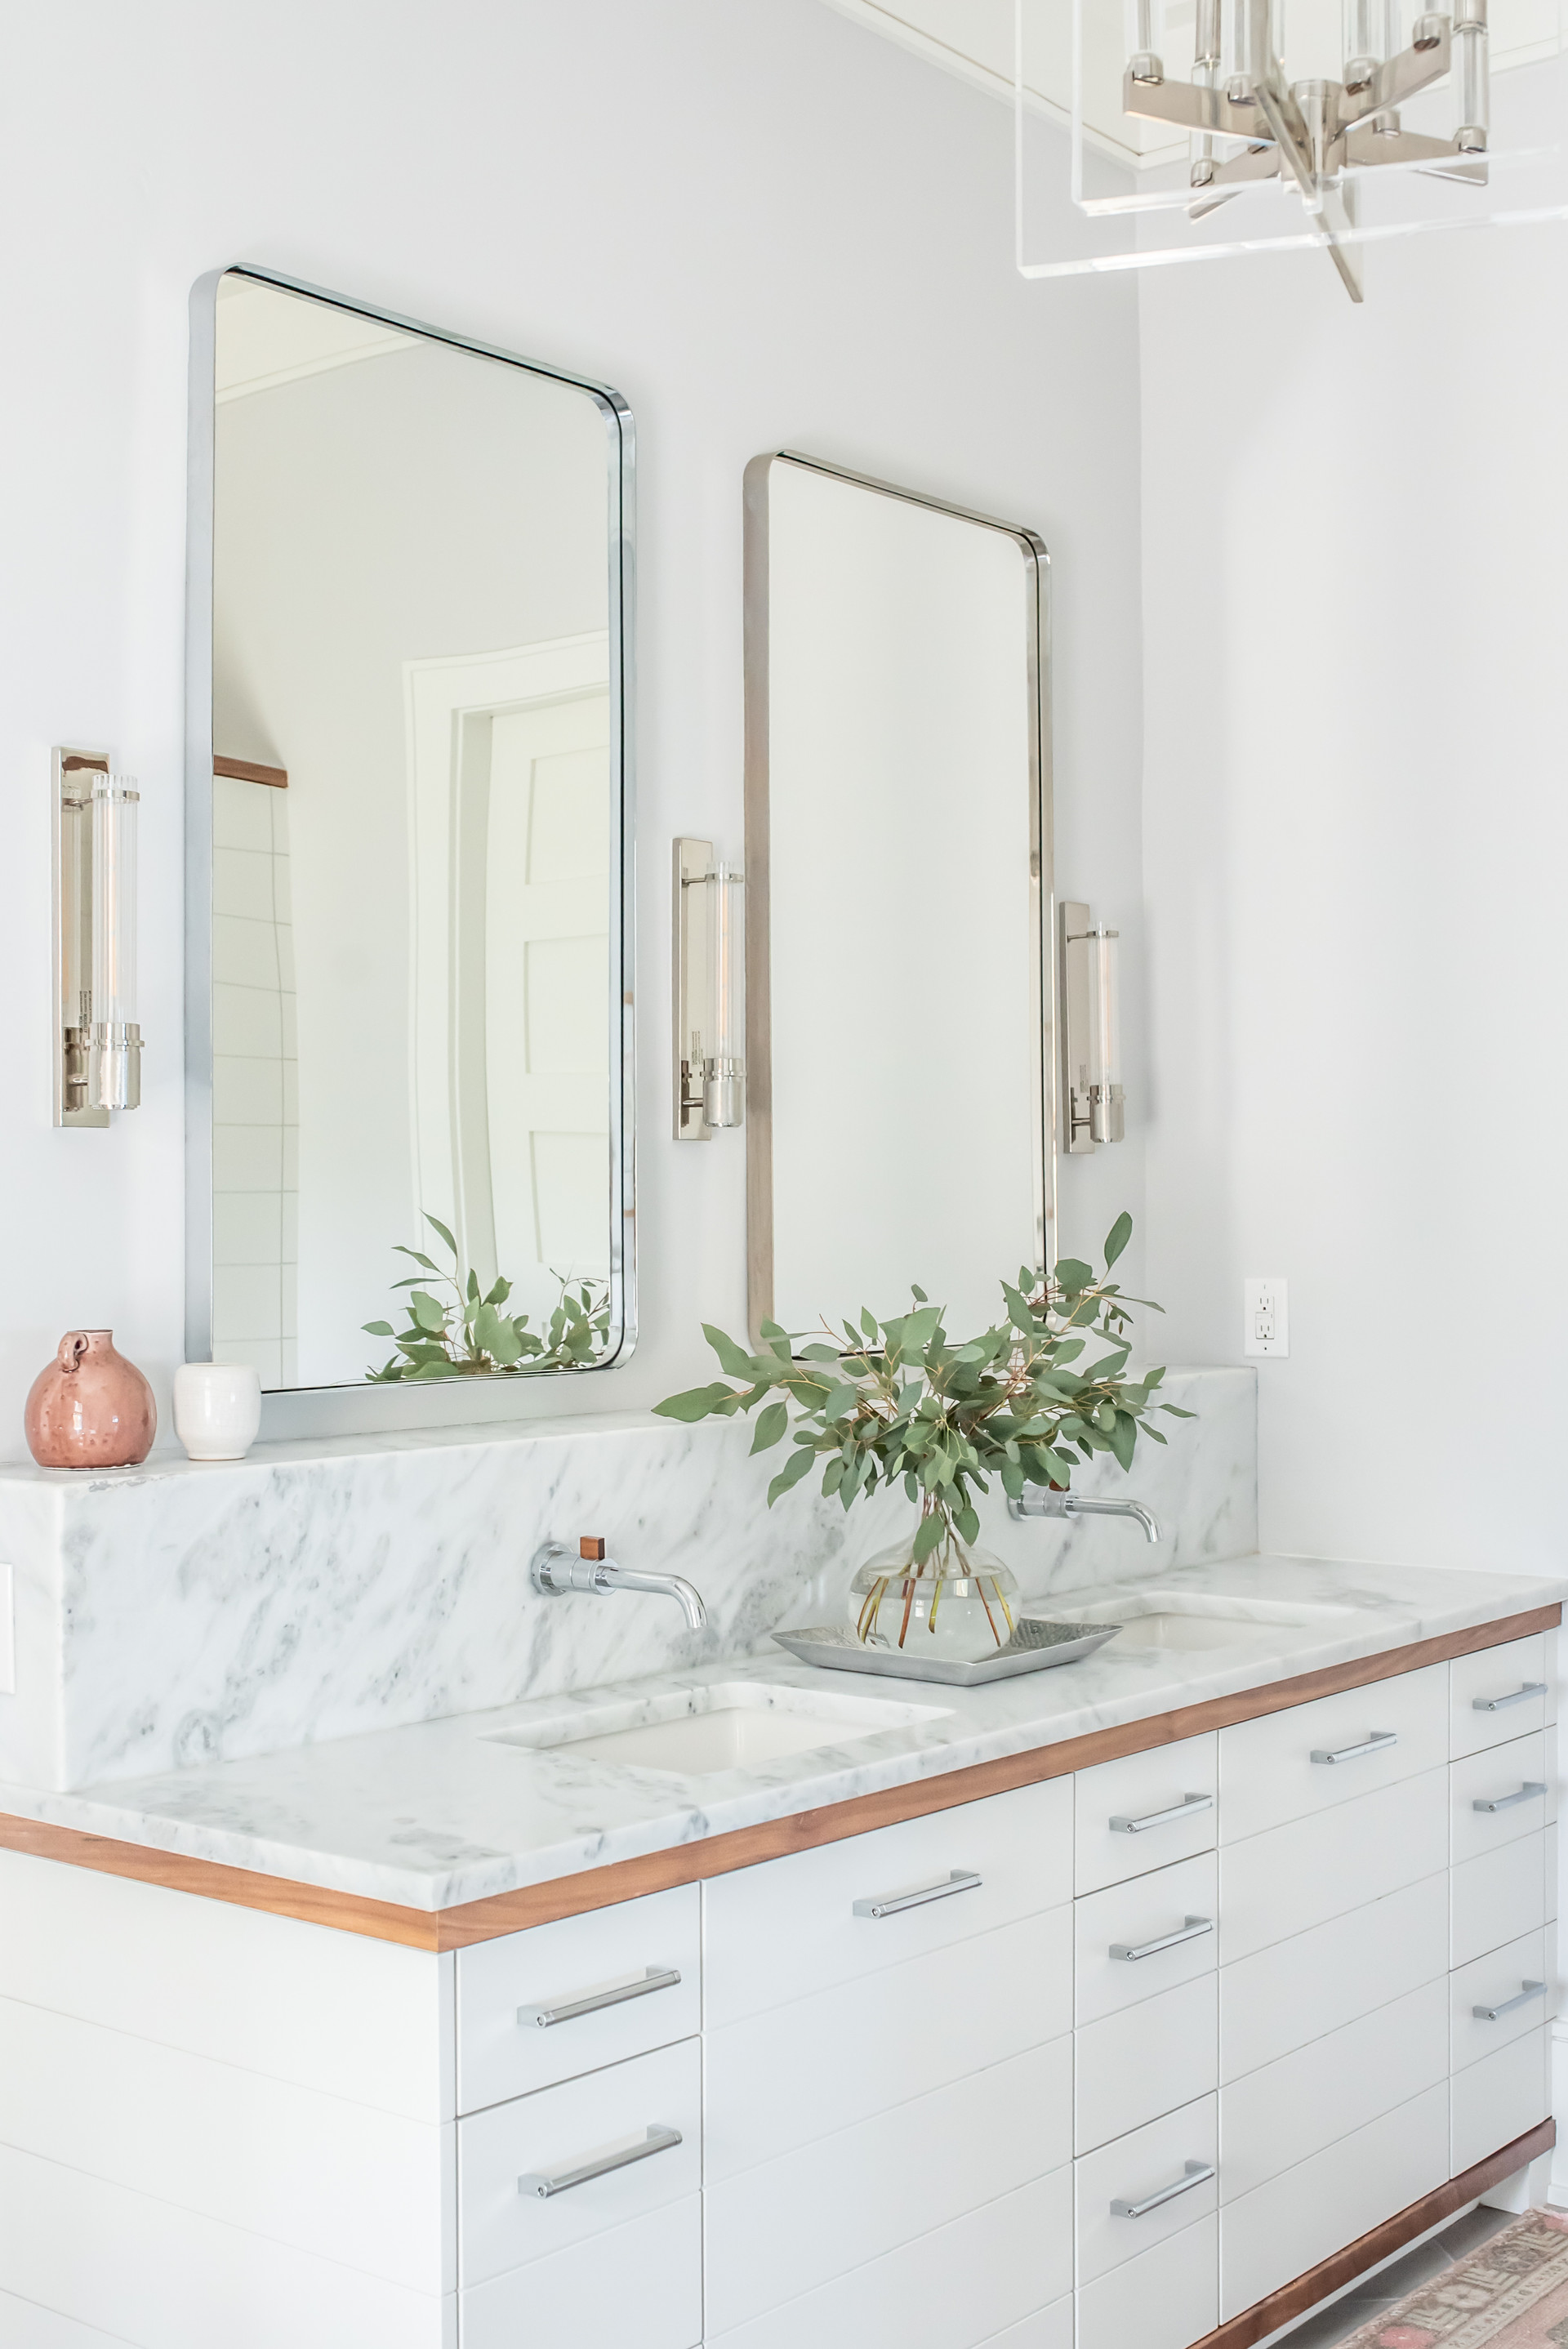 ADC-May1-2019-Master-Bathroom-15.jpg